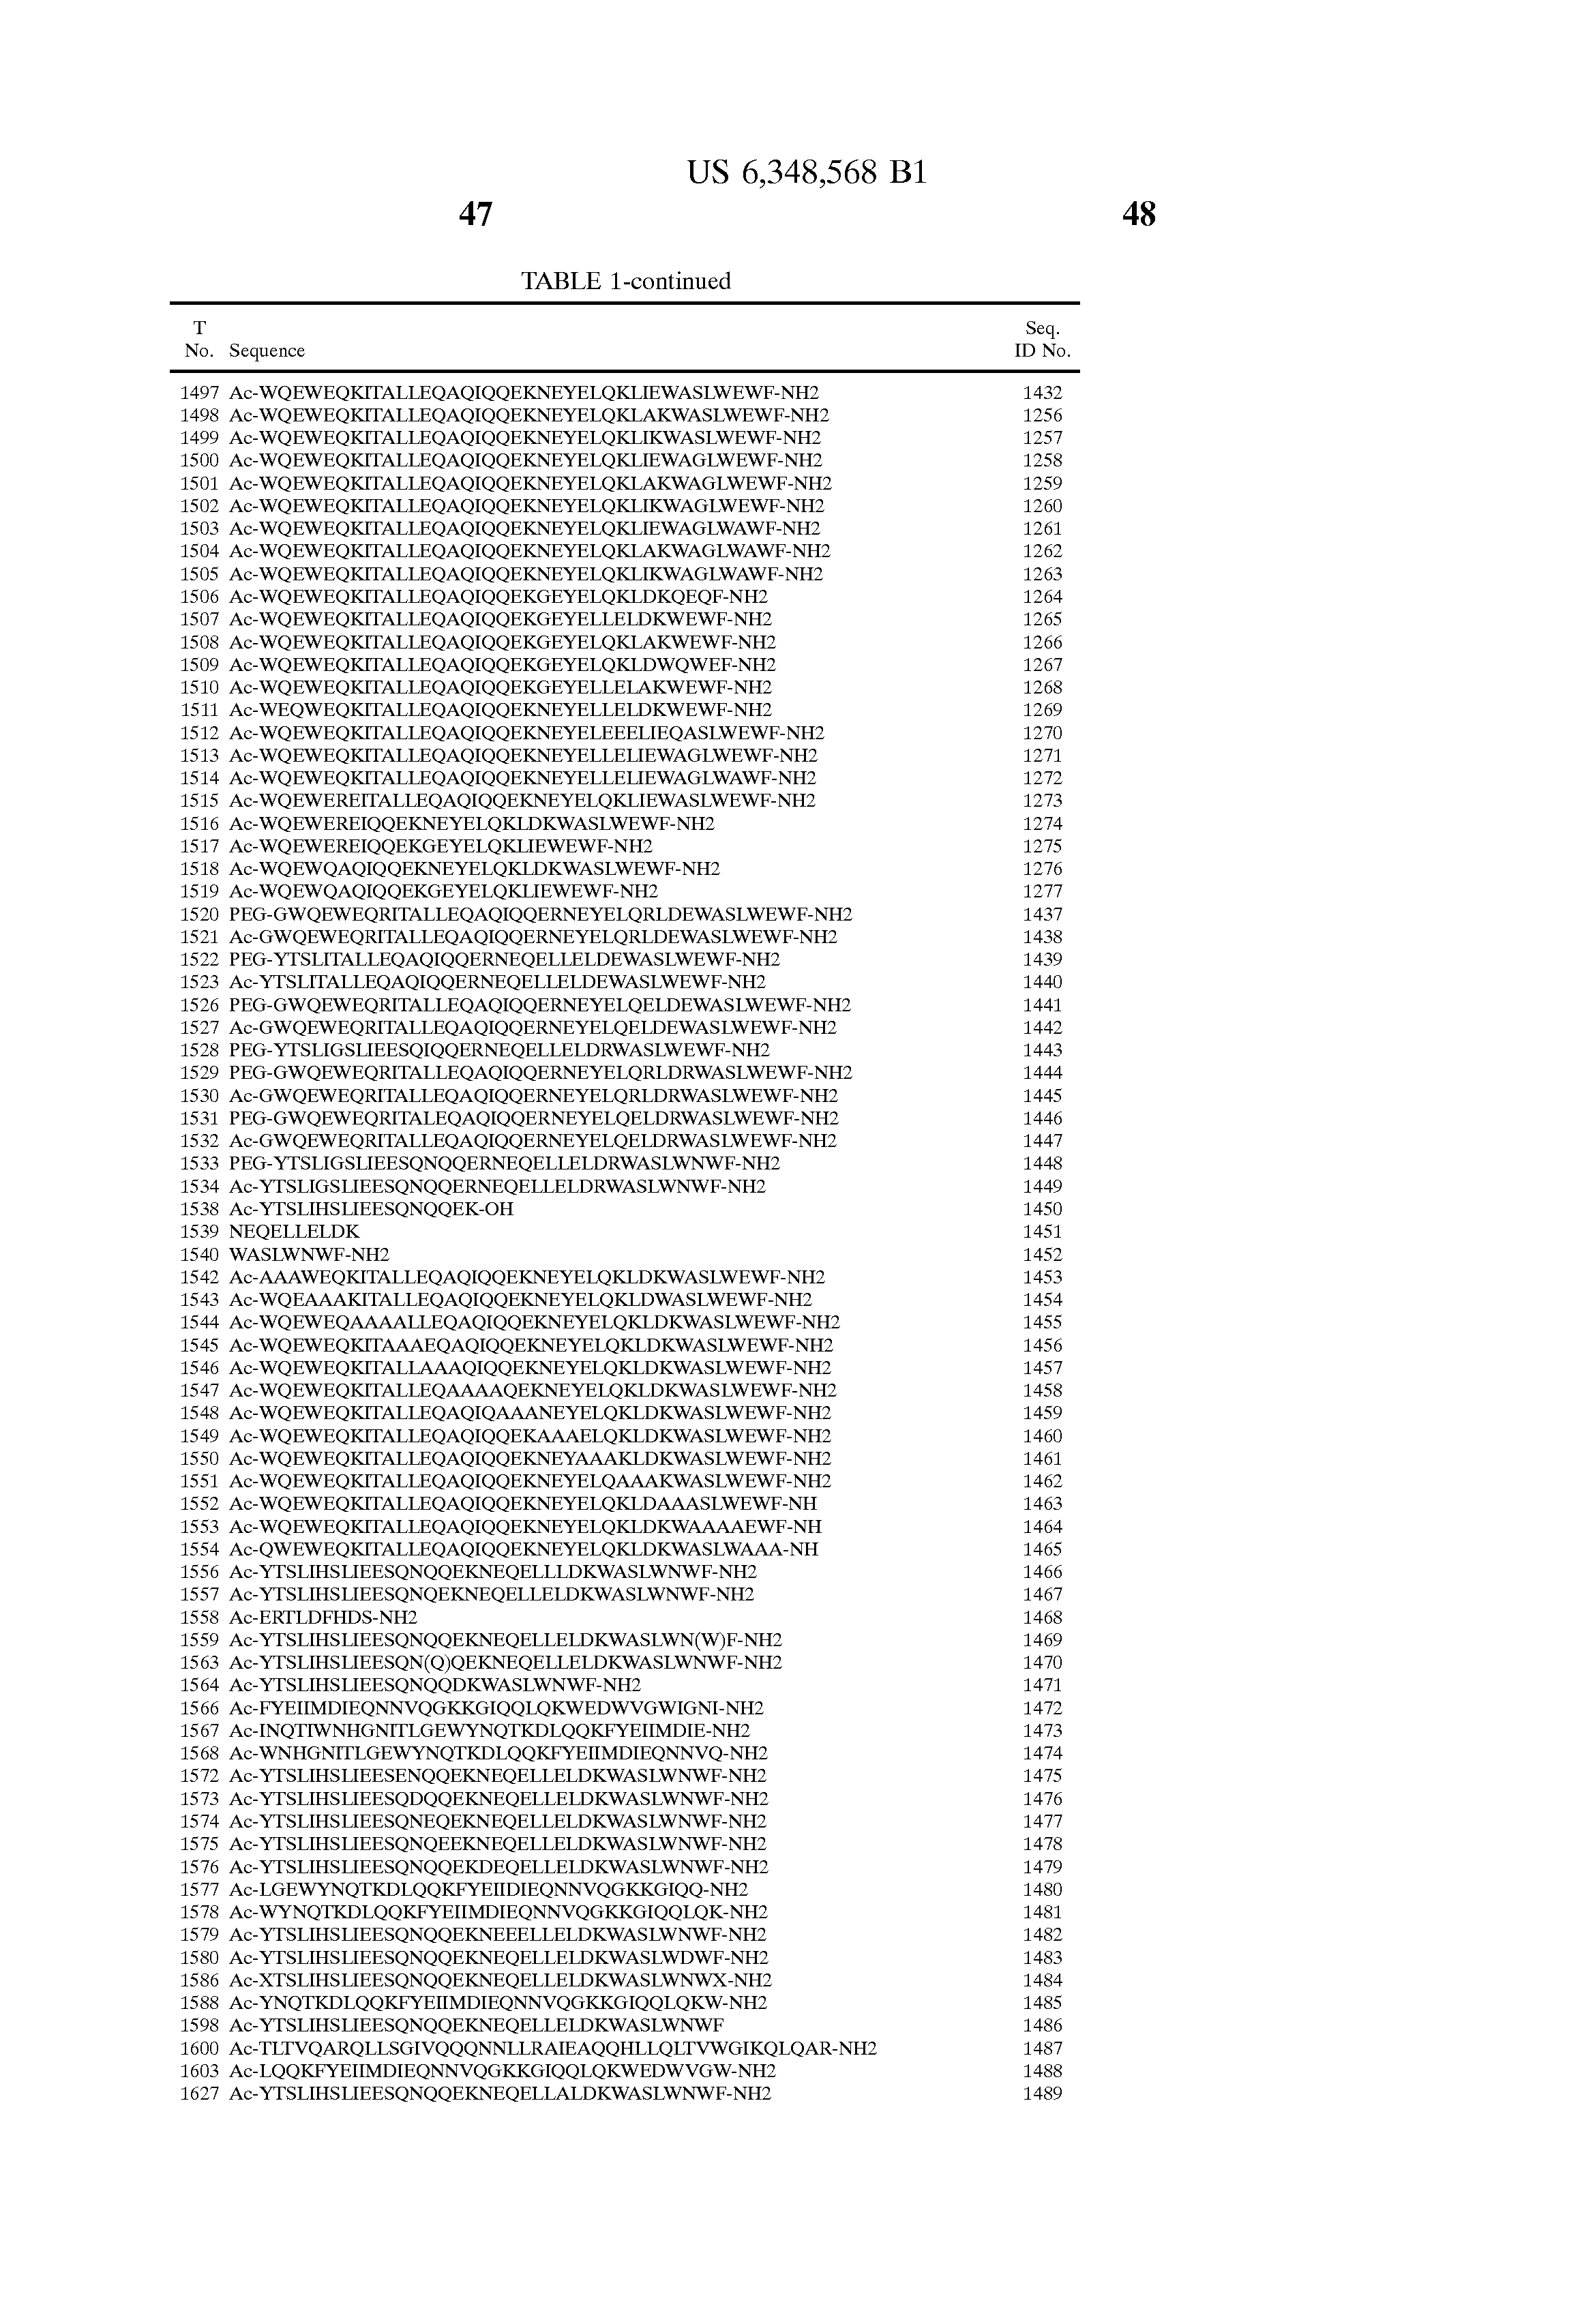 1488 meaning -  Page 55 70